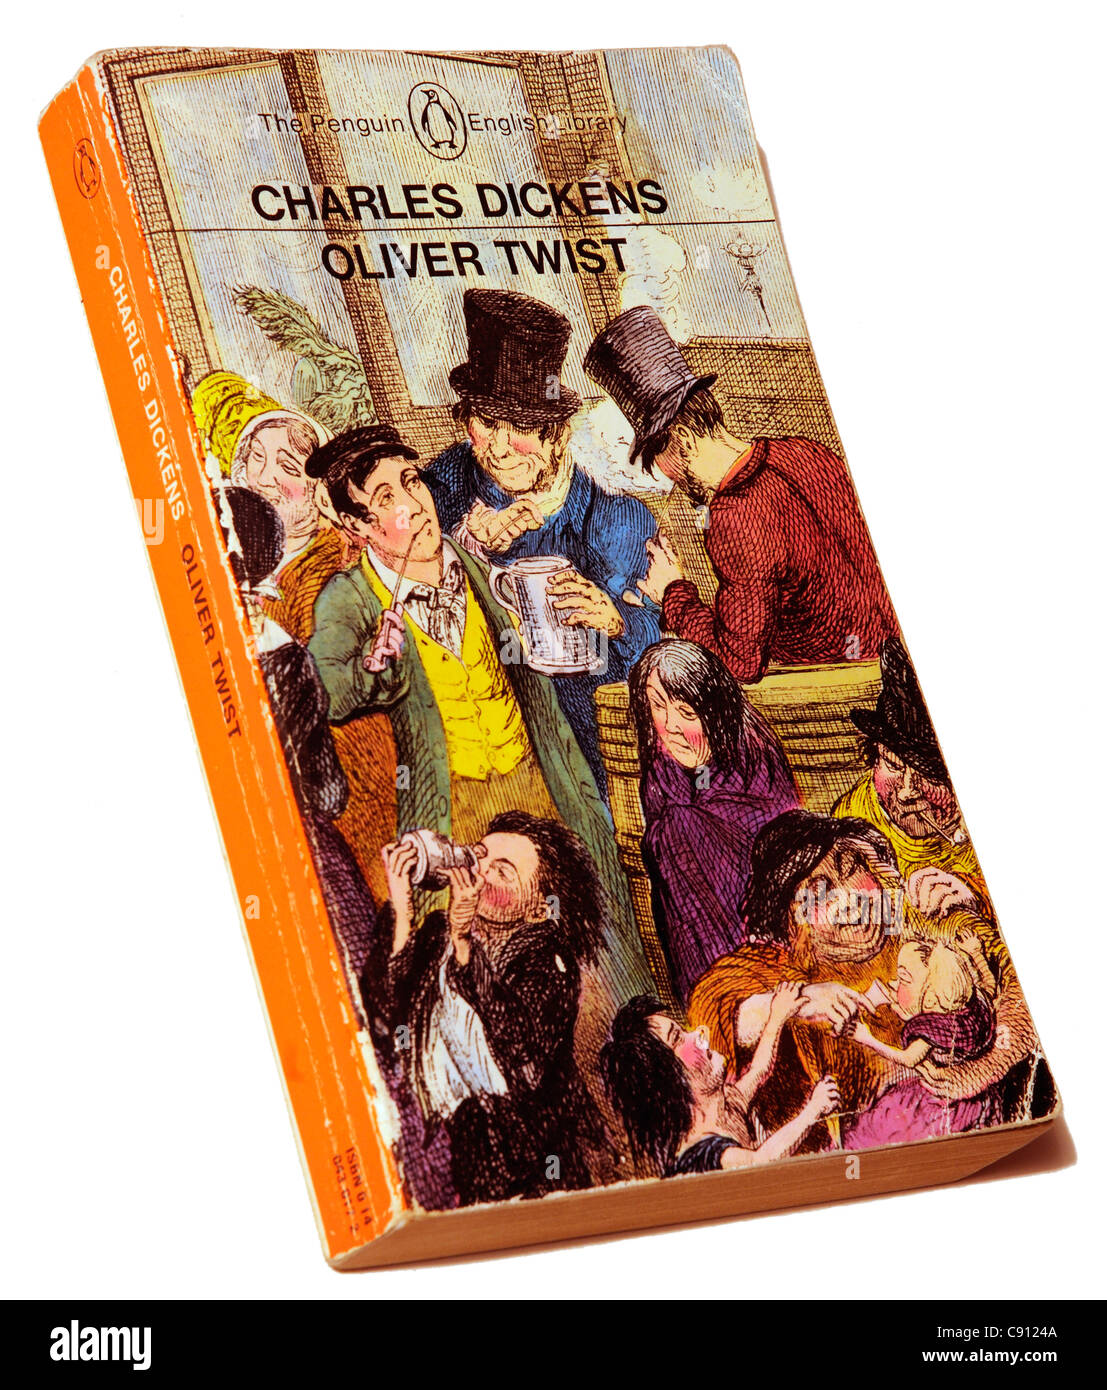 Oliver Twist de Charles Dickens Photo Stock